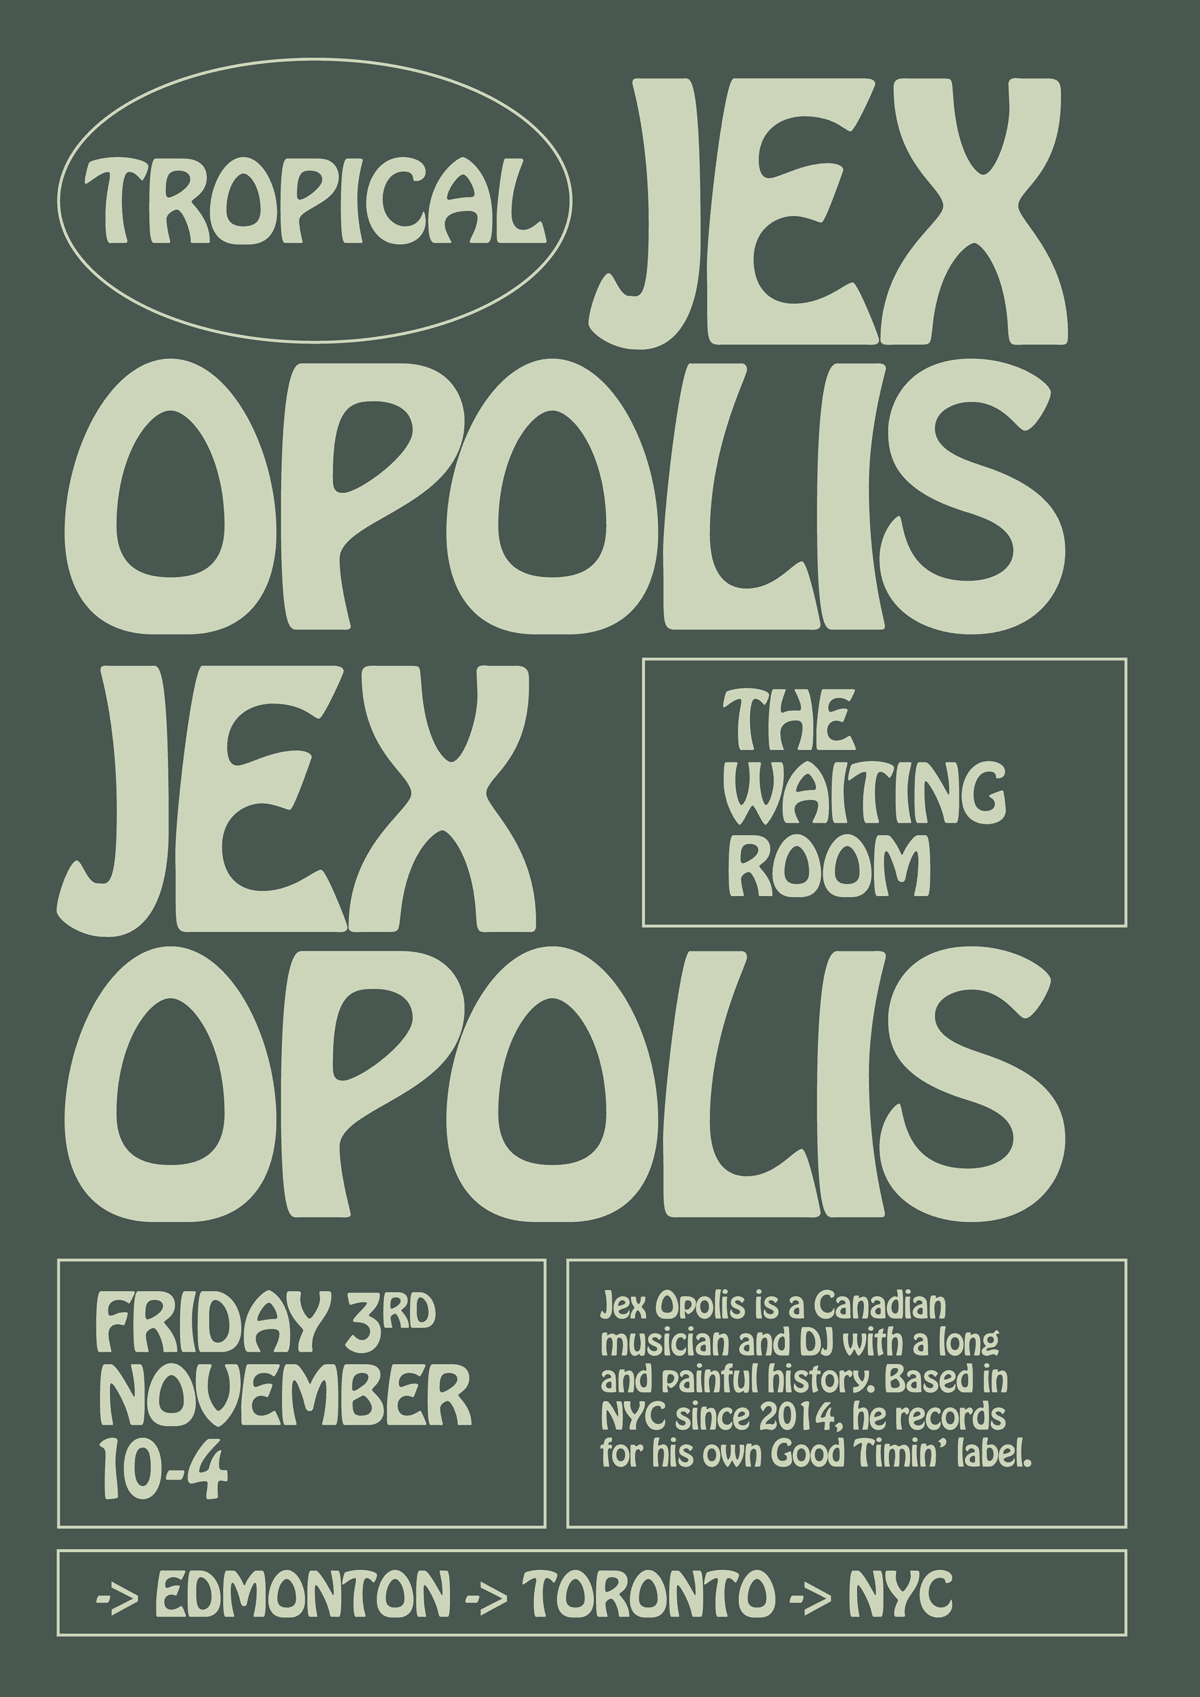 Tropical, Jex Opolis, The Waiting Room, London